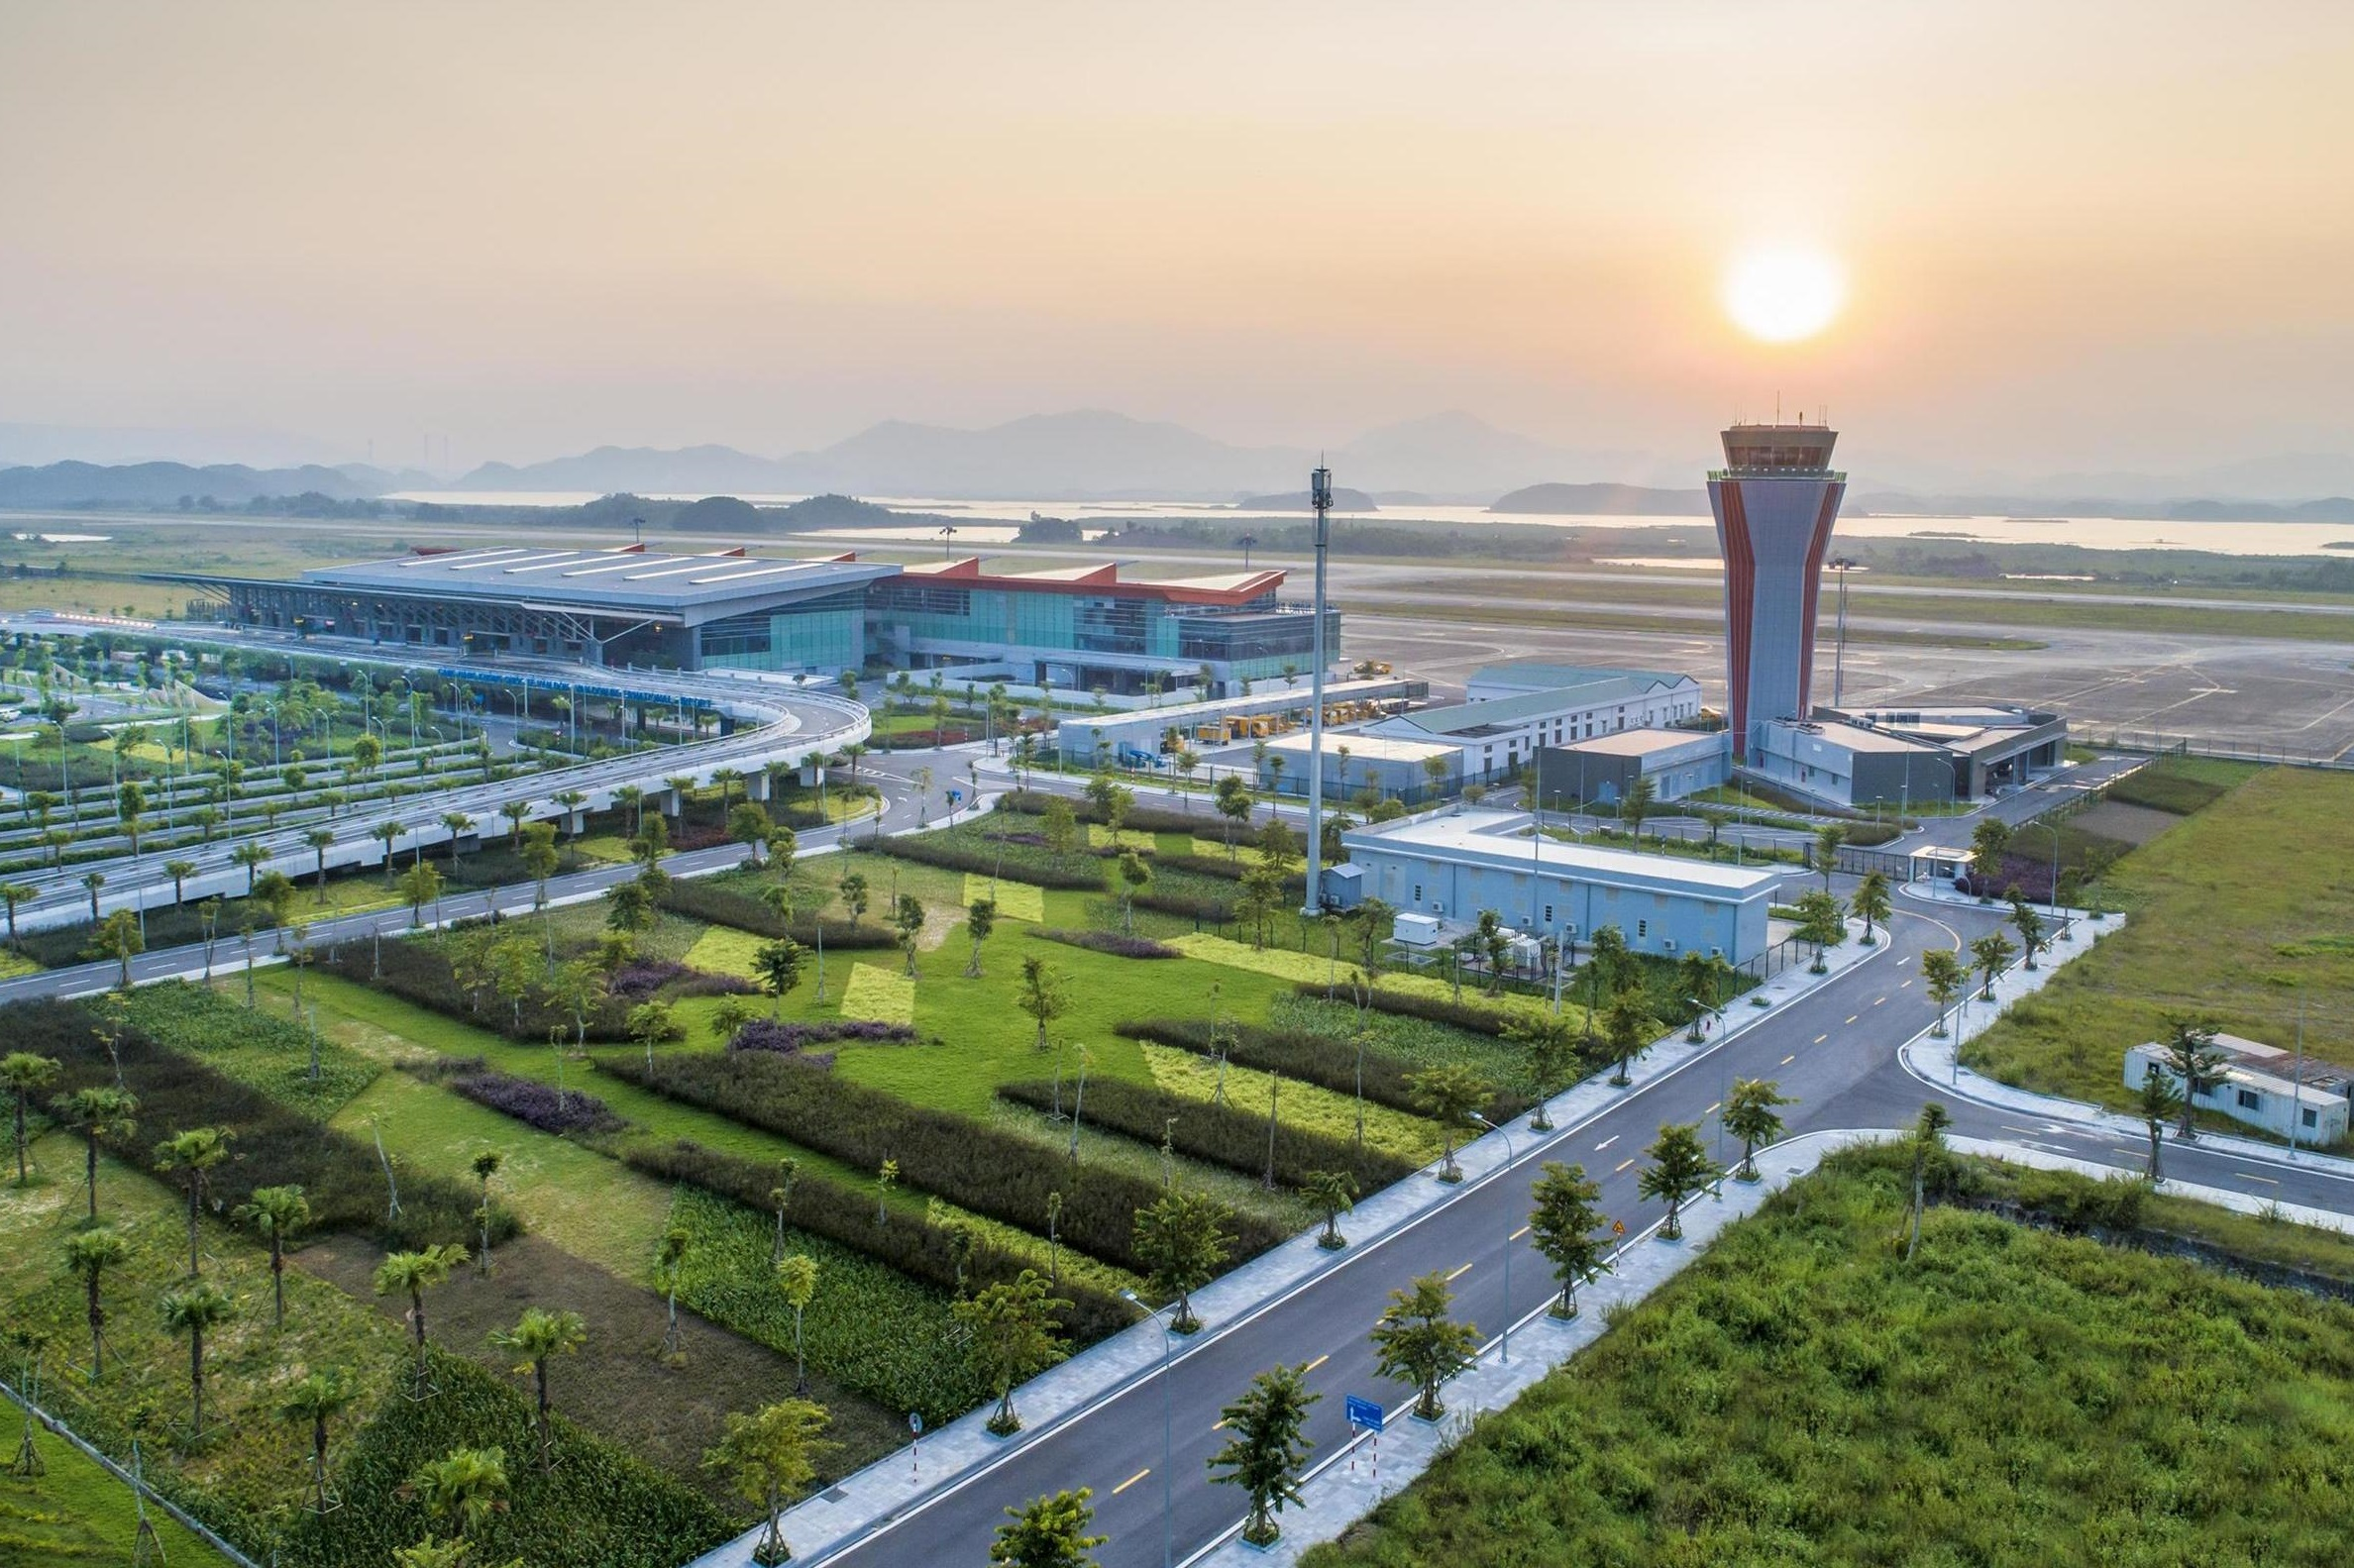 Aéroport international de Vân Đồn